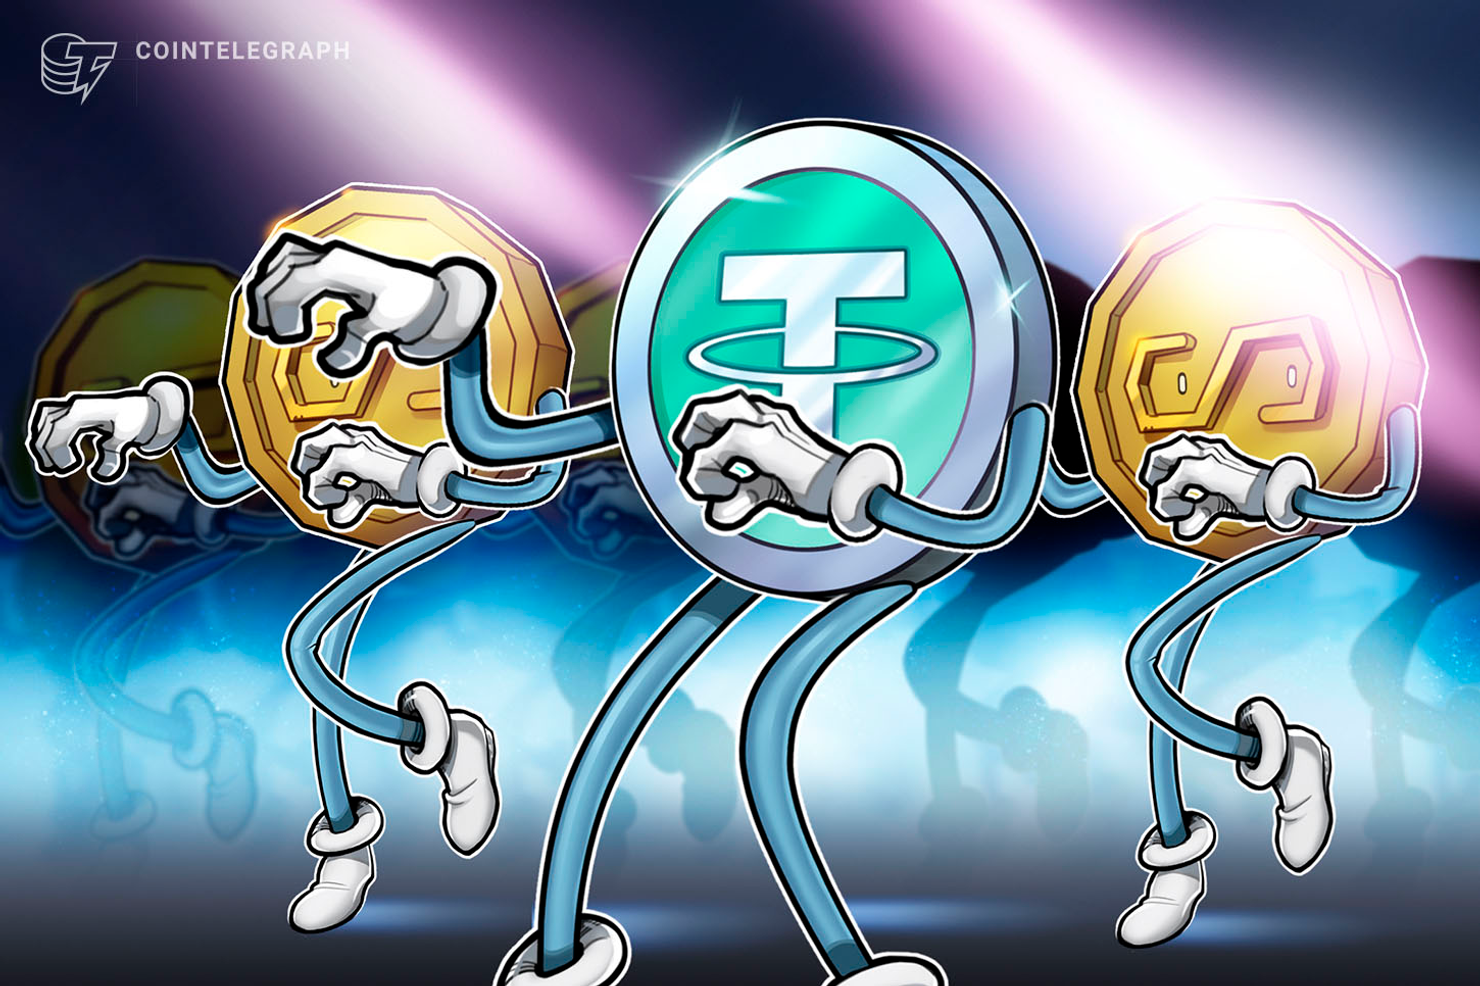 Tether Stablecoin: Can the Crypto Market Live Without It?